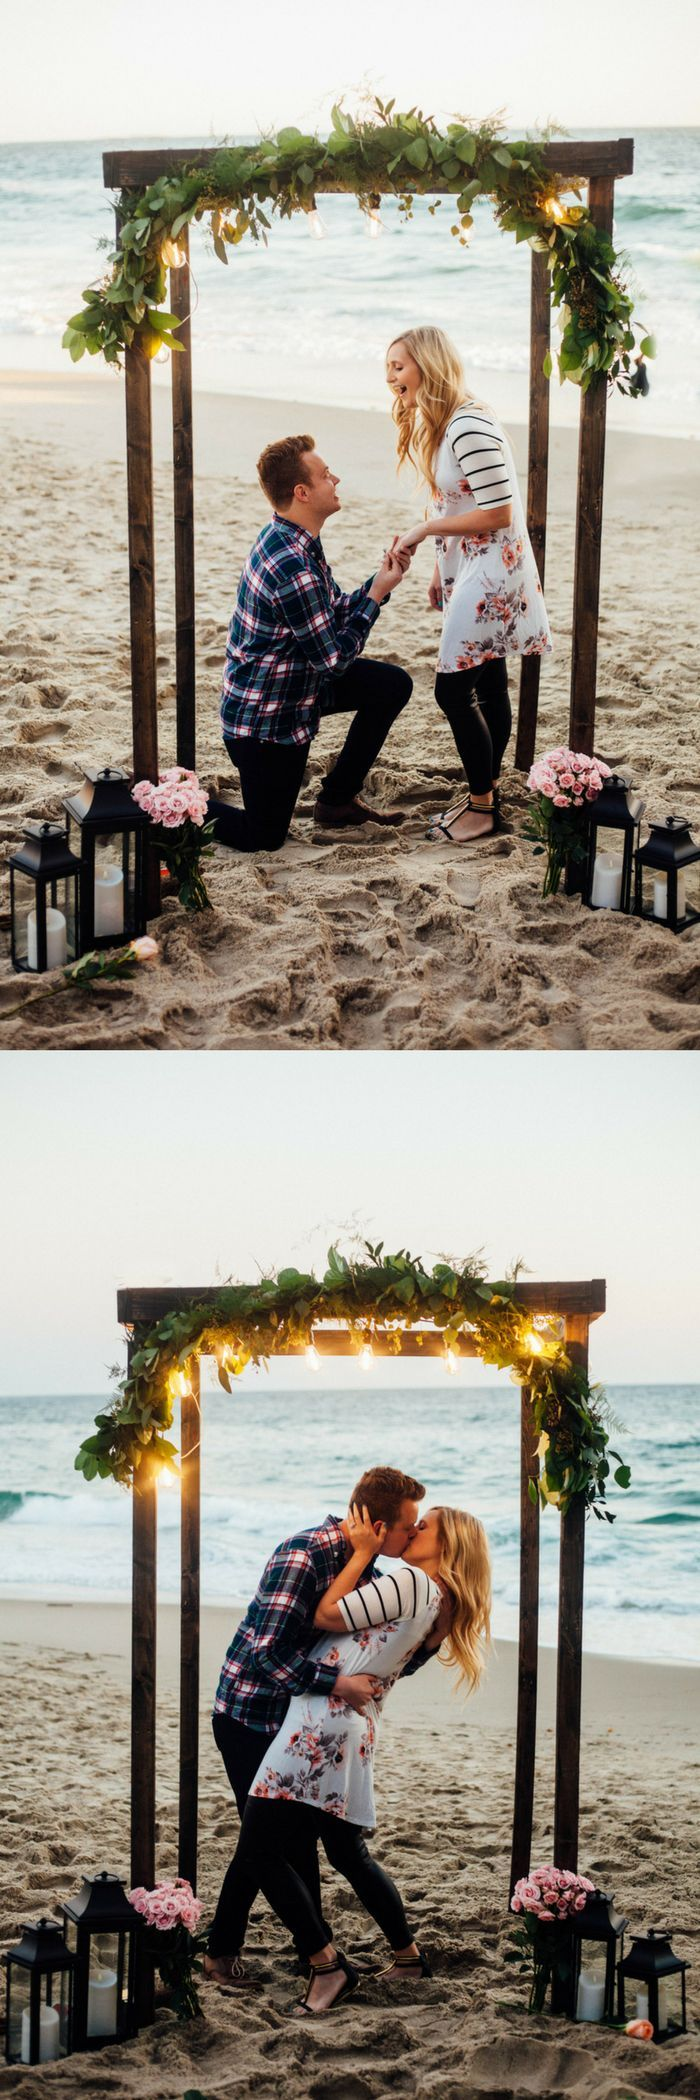 Everything about this beach proposal has us swooning! She was completely surprised, and all the photos are gorgeous.